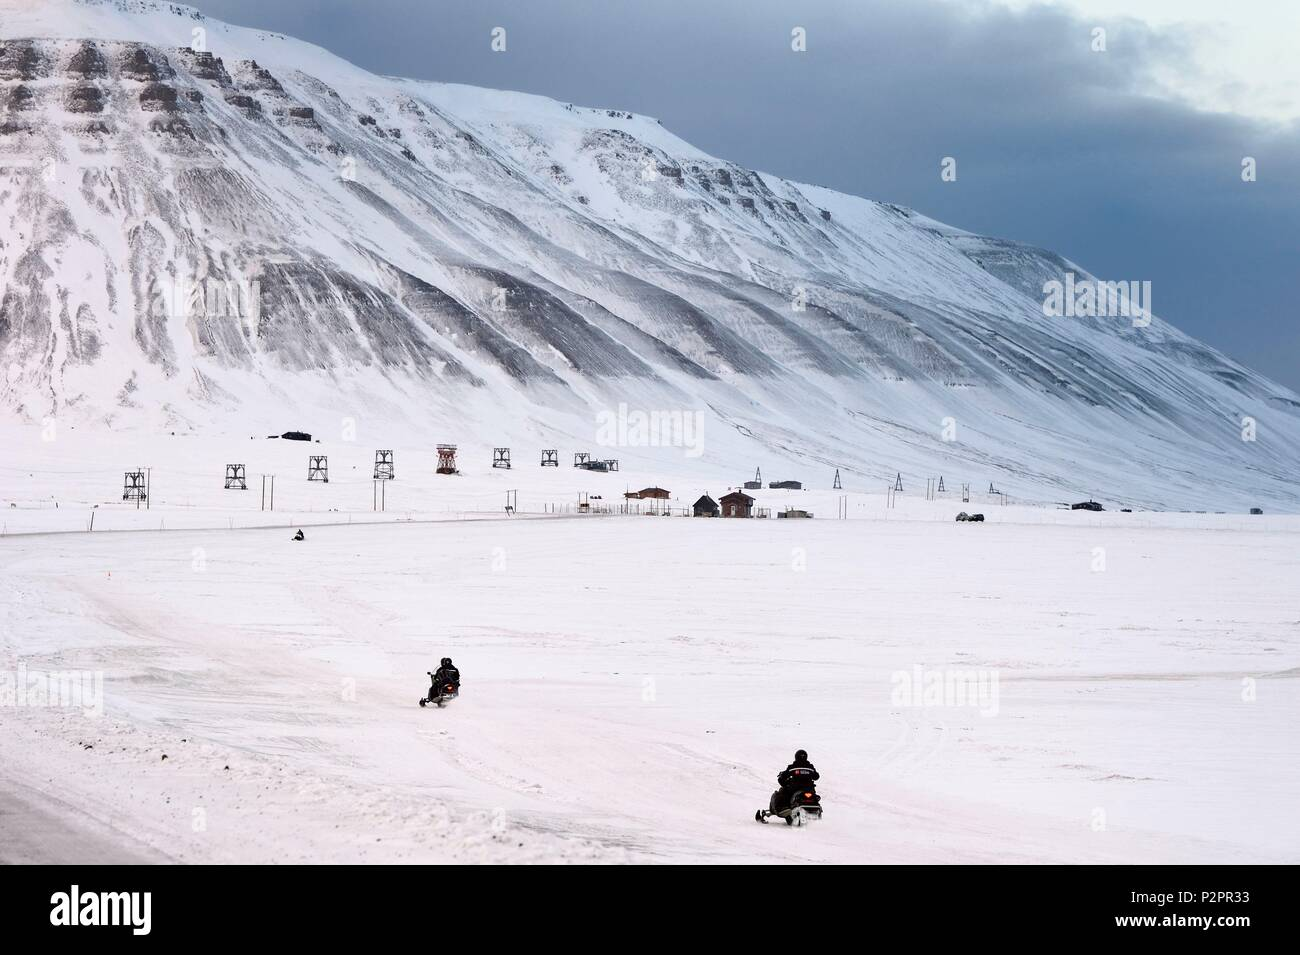 Norway, Svalbard, Spitzbergen, Adventdalen valley near Longyearbyen, snowmobile - Stock Image